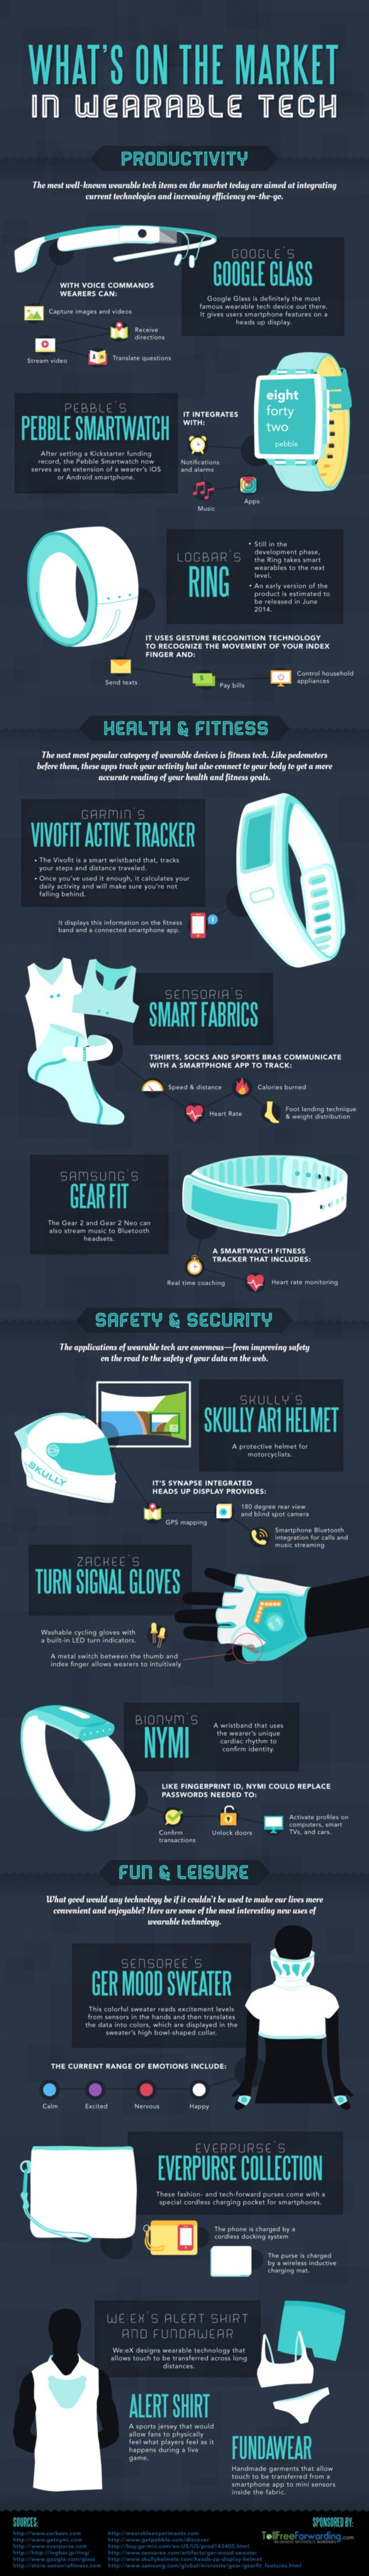 What's on the Market in Wearable Tech